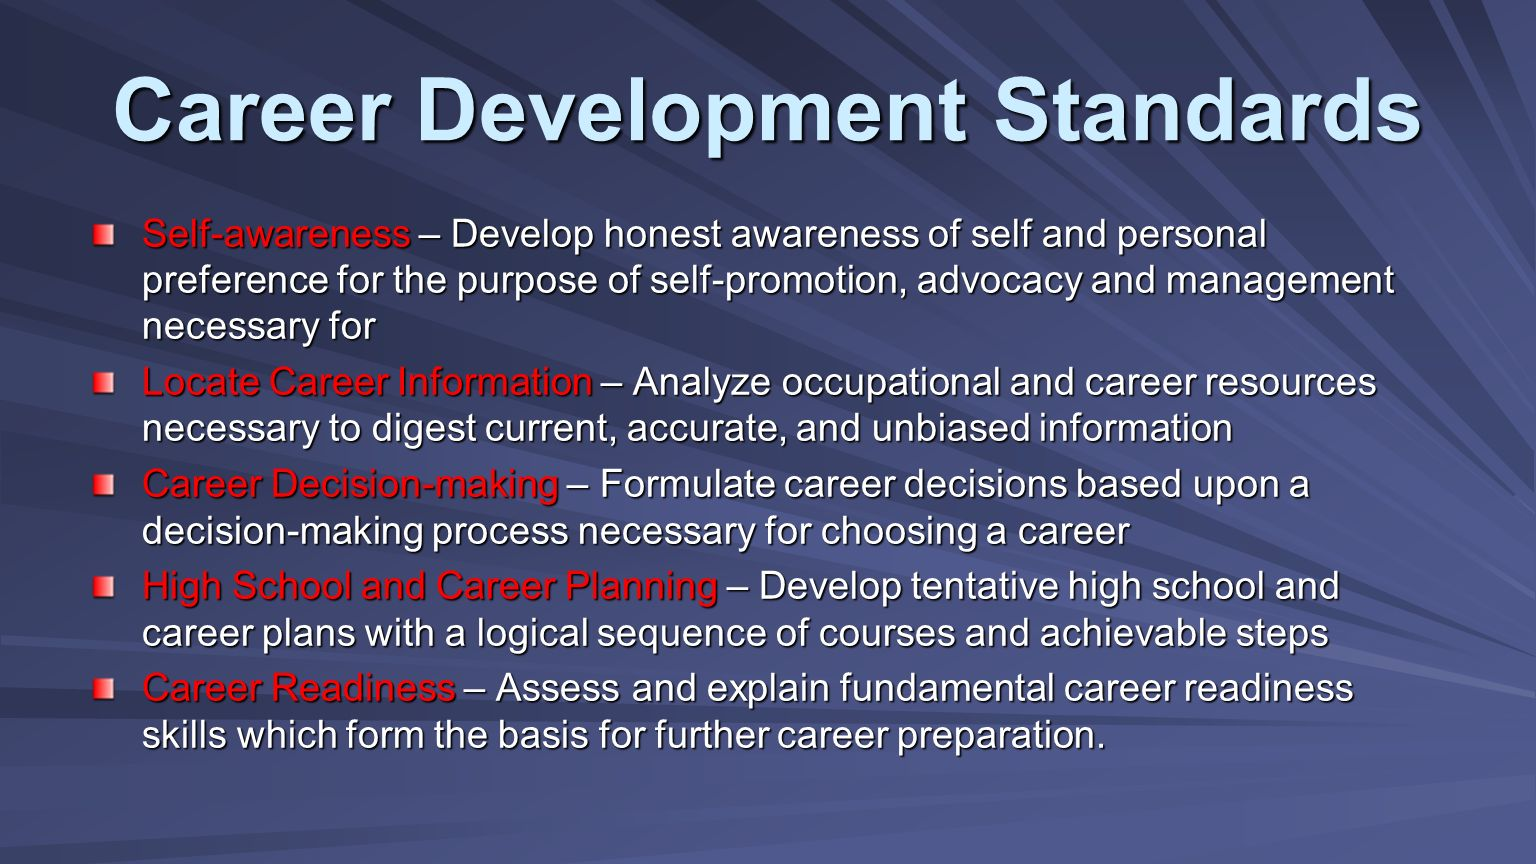 Self-awareness – Develop honest awareness of self and personal preference for the purpose of self-promotion, advocacy and management necessary for Locate Career Information – Analyze occupational and career resources necessary to digest current, accurate, and unbiased information Career Decision-making – Formulate career decisions based upon a decision-making process necessary for choosing a career High School and Career Planning – Develop tentative high school and career plans with a logical sequence of courses and achievable steps Career Readiness – Assess and explain fundamental career readiness skills which form the basis for further career preparation.